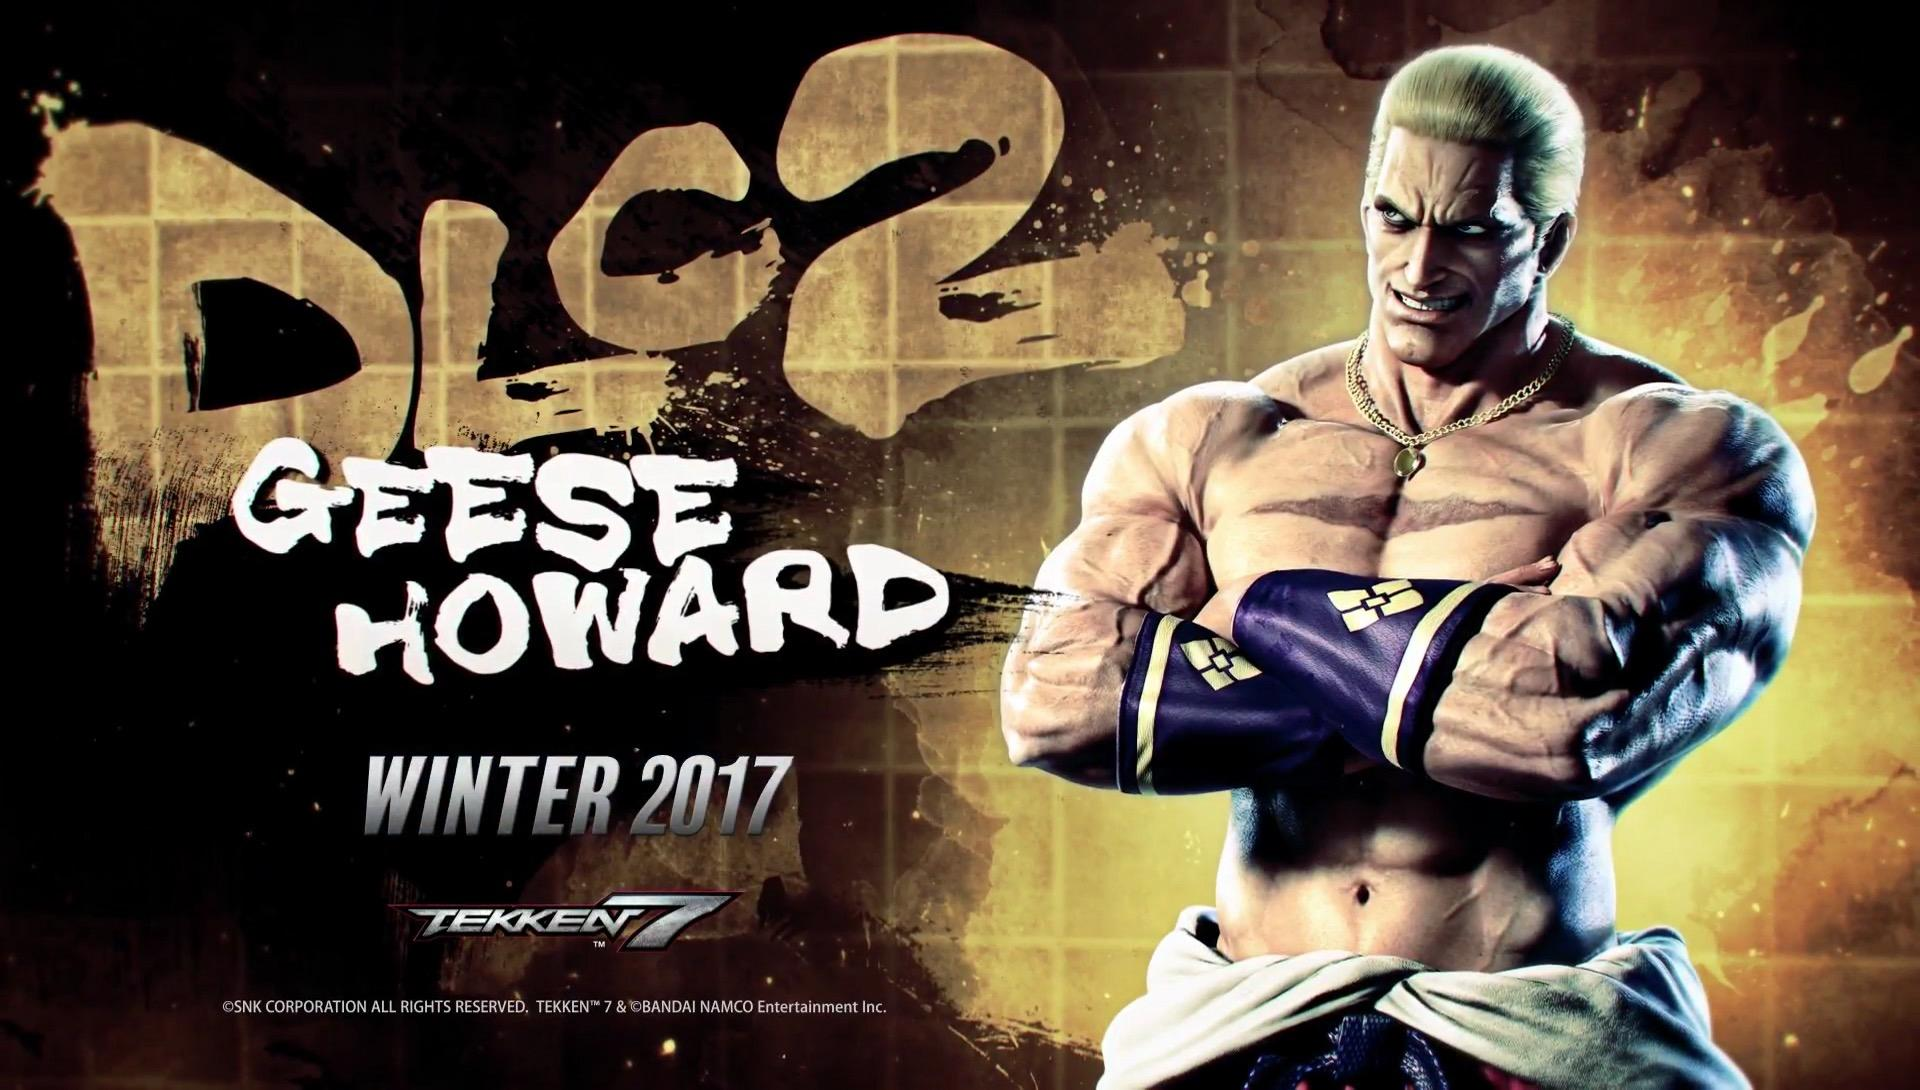 More screenshots of Fatal Fury's Geese Howard in Tekken 7